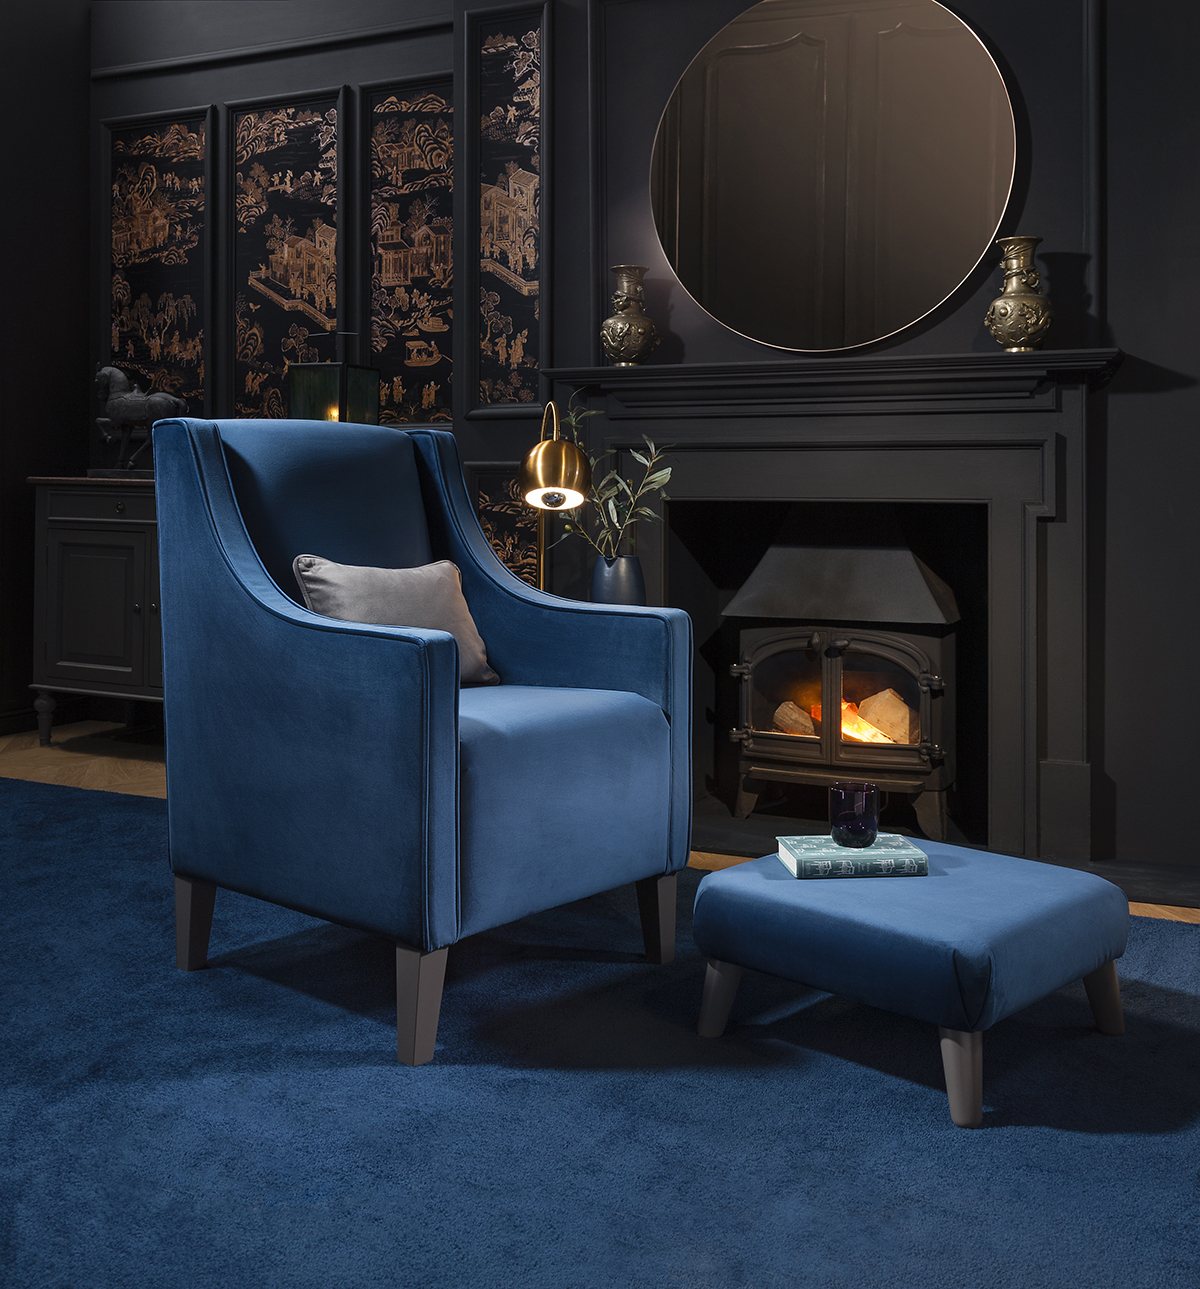 Furniture favourites - What better way to stay cosy than by curling up in your favourite chair next to an open fire or roaring wood burner? The Eastergate armchair from Mood Collections' Opulent range is upholstered in rich Petrol Blue velvet, boasting sleek, clean lines, curved arms and piping detail, finished with dark slate grey legs. Currently priced at a discounted rate of £460.75, the aesthetically rich and supremely snug seat can be purchased online at www.moodcollections.co.uk